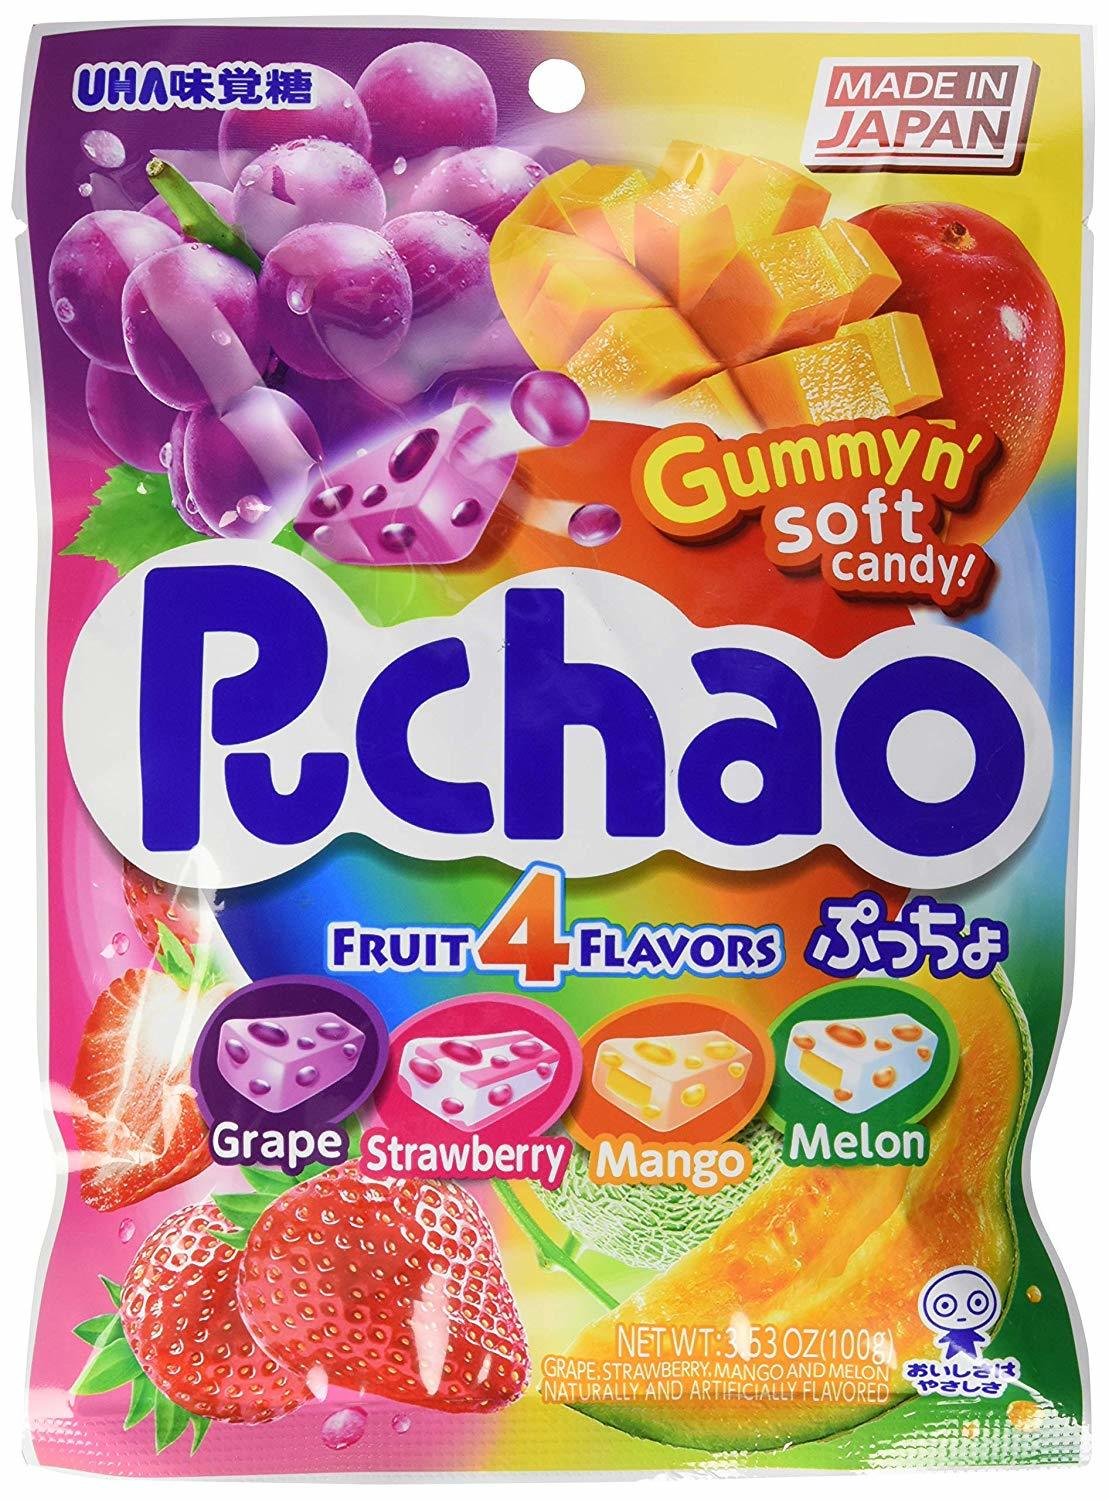 Gummyn' Soft Candy: Puchao - Fruit Mix 100g (20 Pieces) image